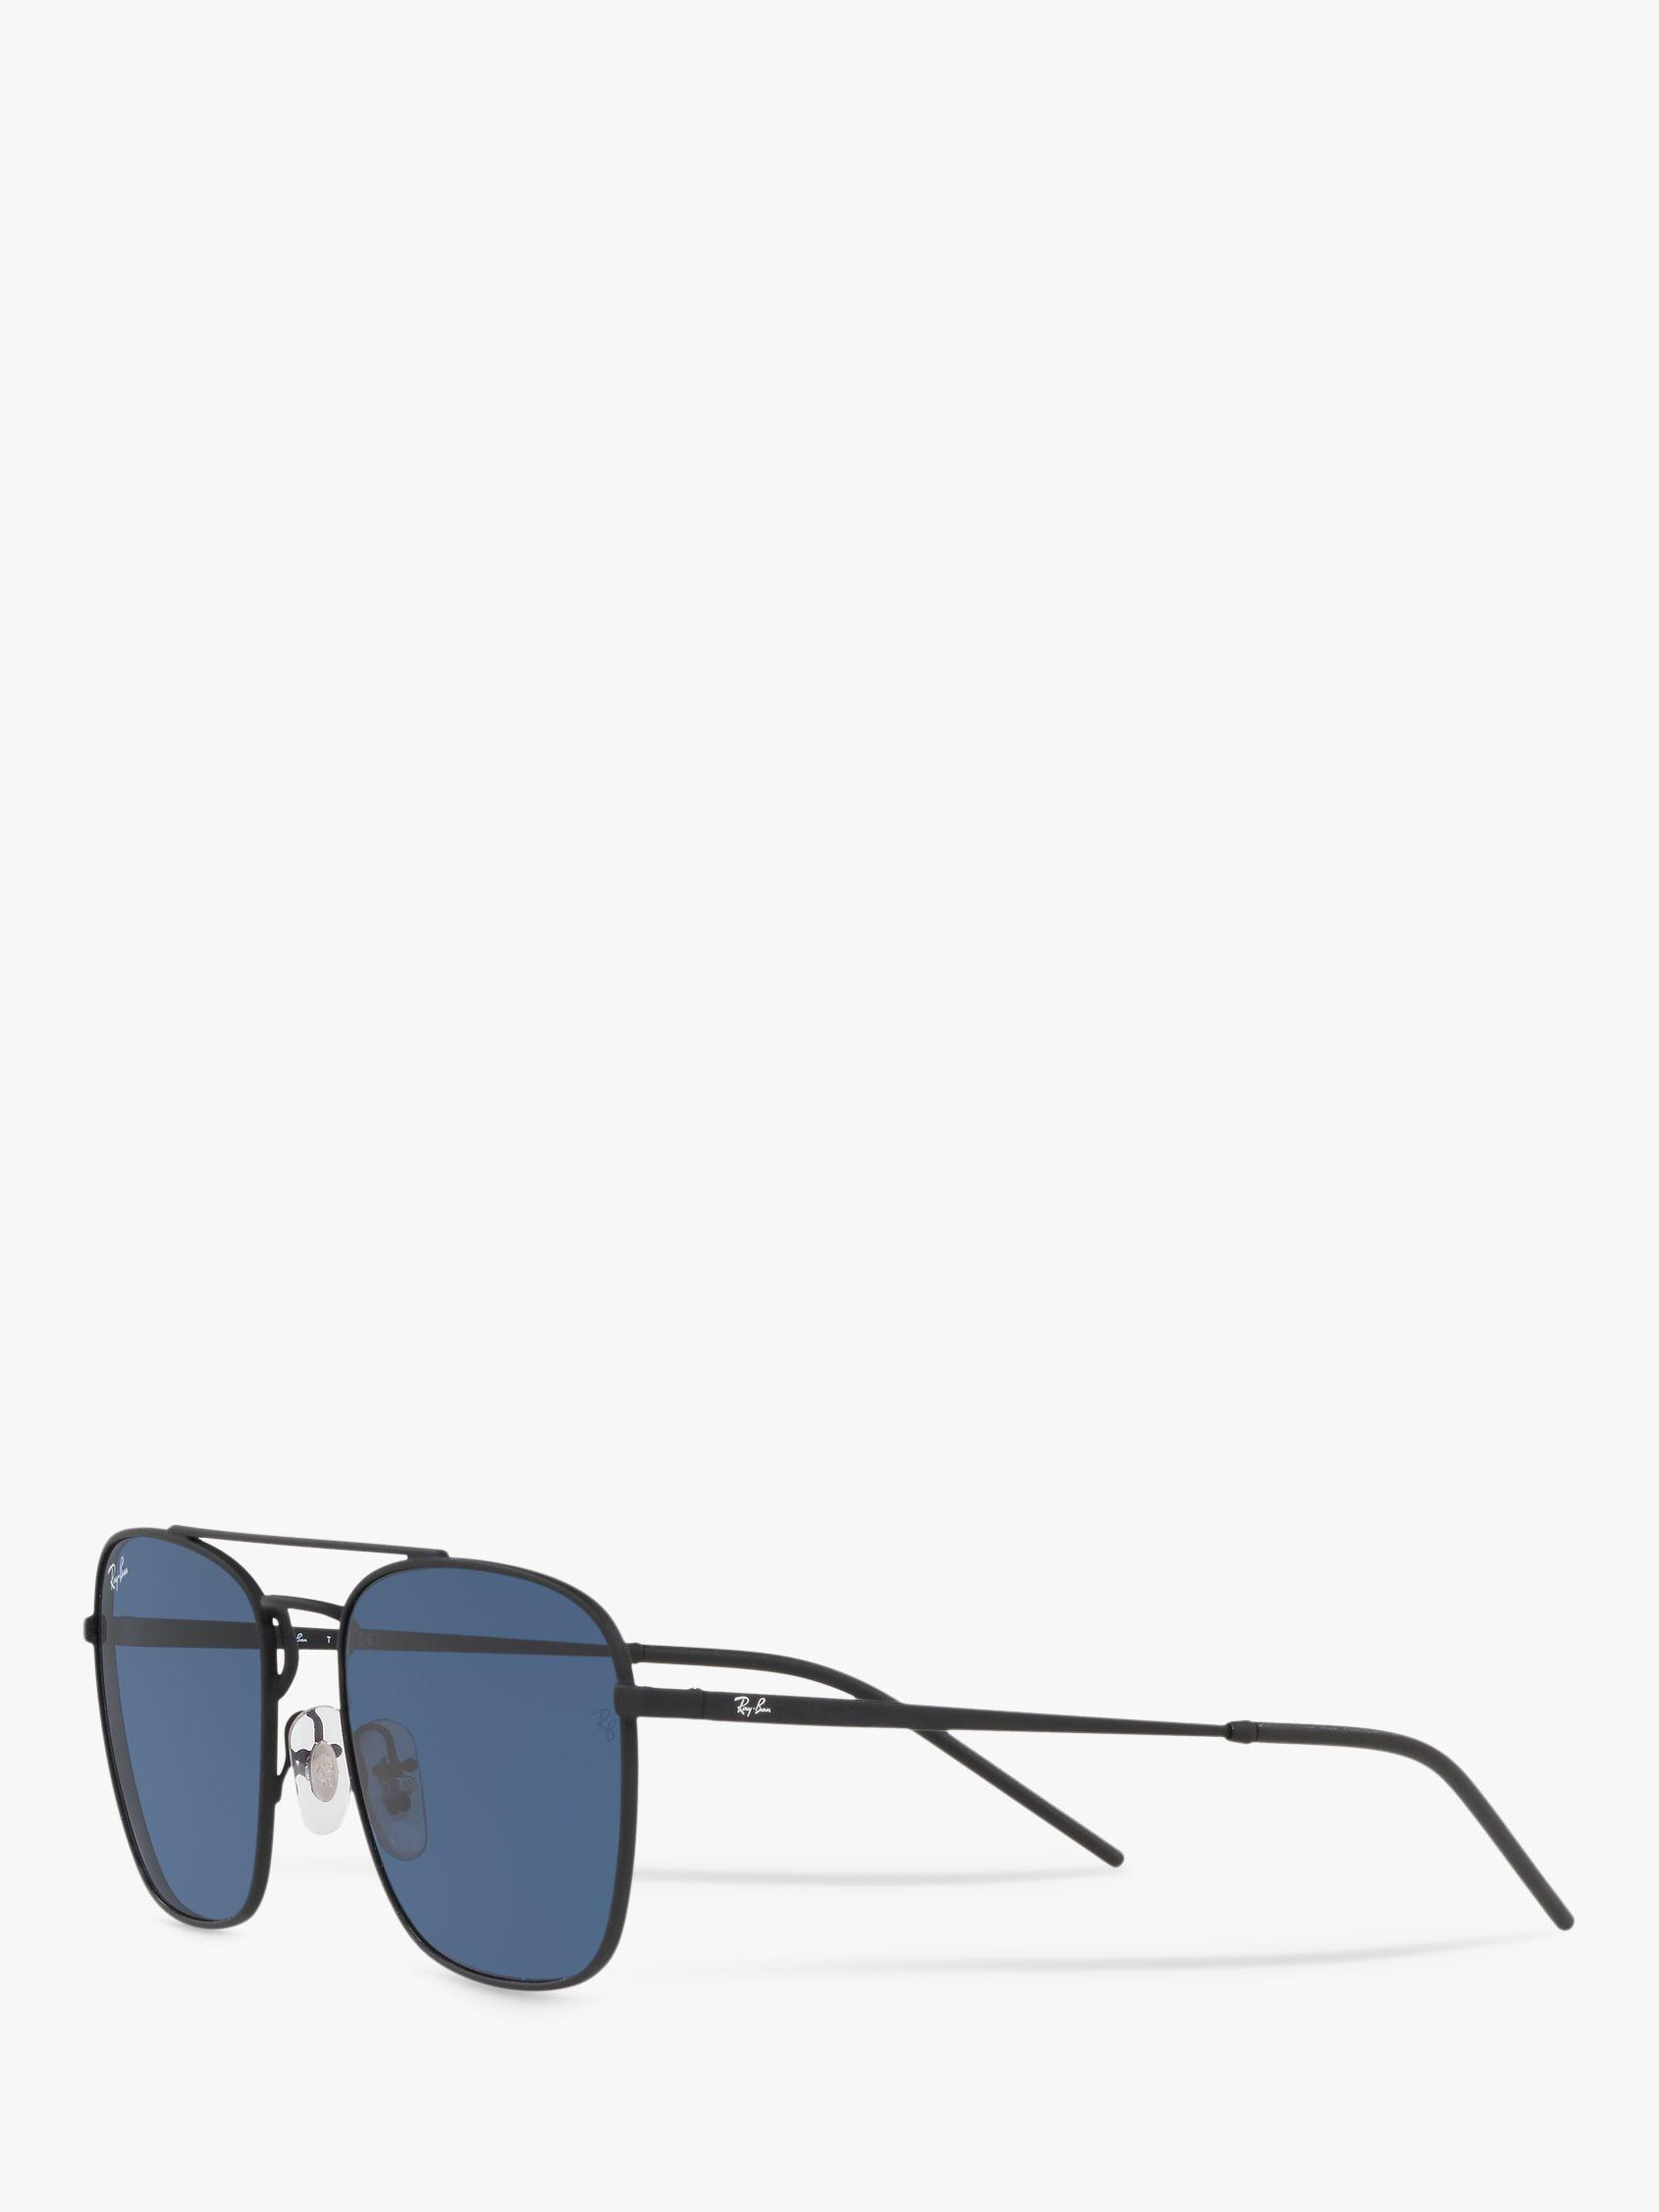 5ab5637c67f Ray-Ban Rb3588 Men s Square Sunglasses in Blue for Men - Lyst